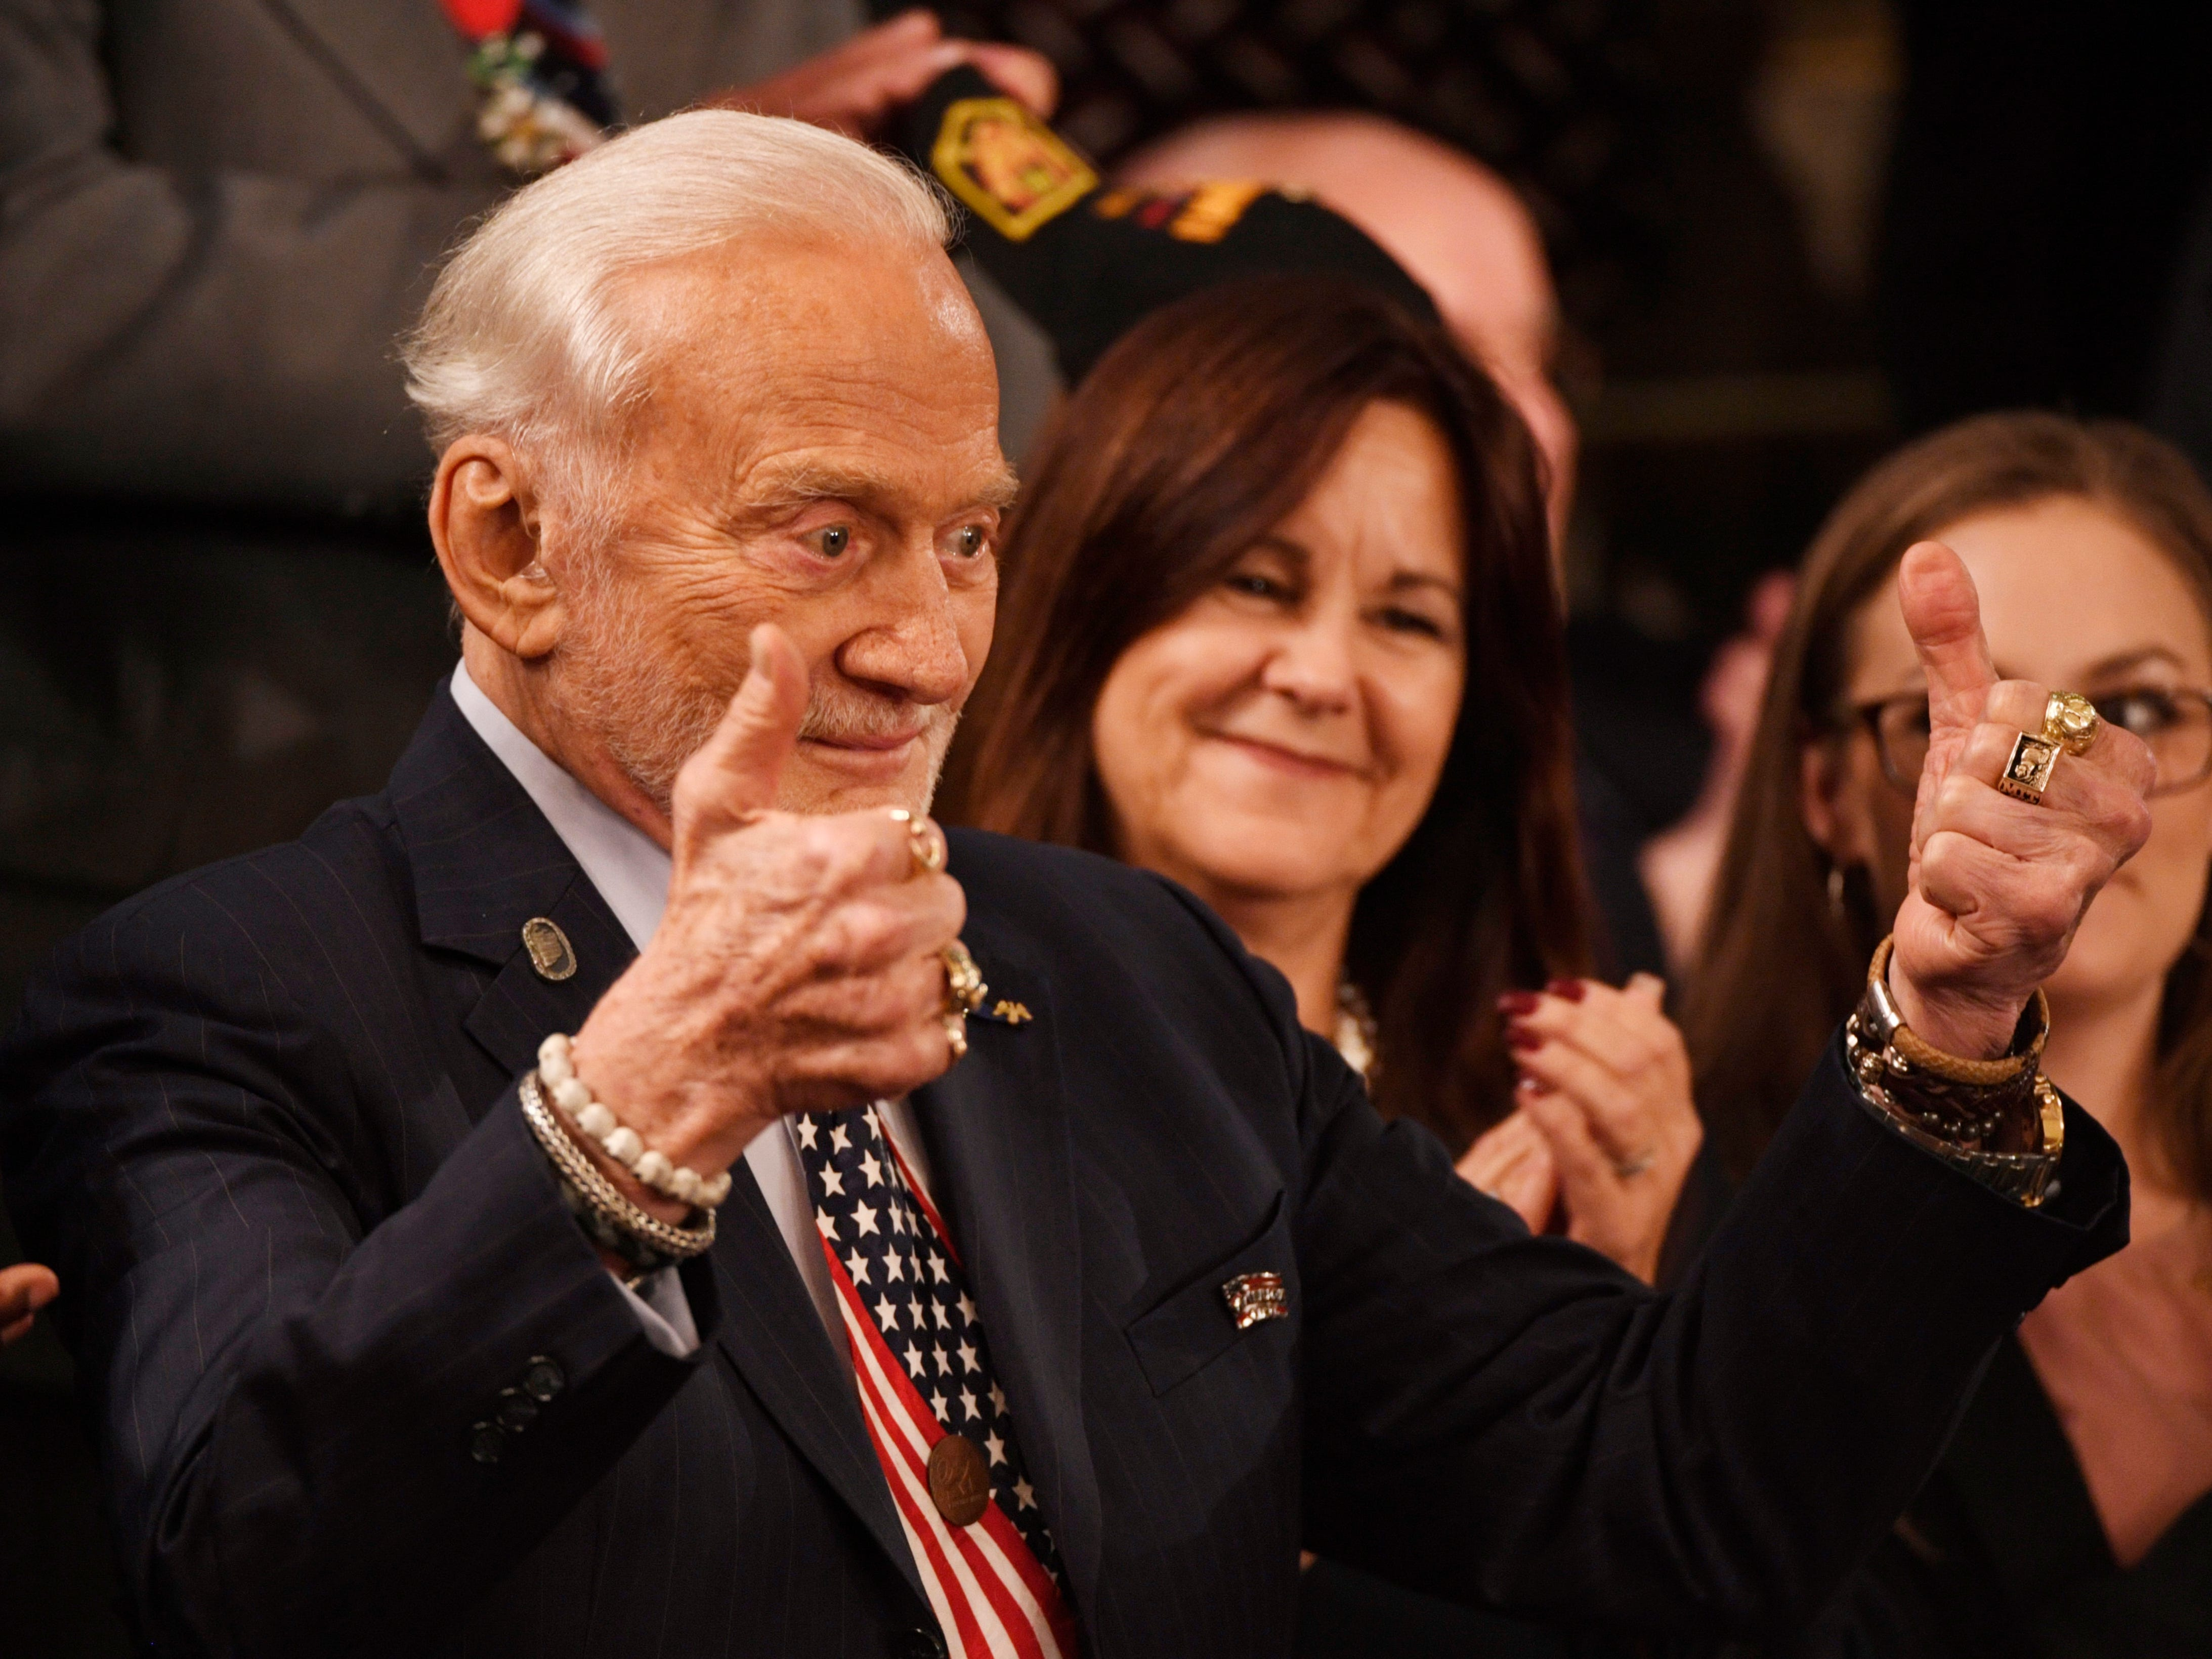 Astronaut Buzz Aldrin gives the thumbs up as President Donald Trump delivers the State of the Union address.  Aldrin landed on the moon in 1969 in Apollo 11.